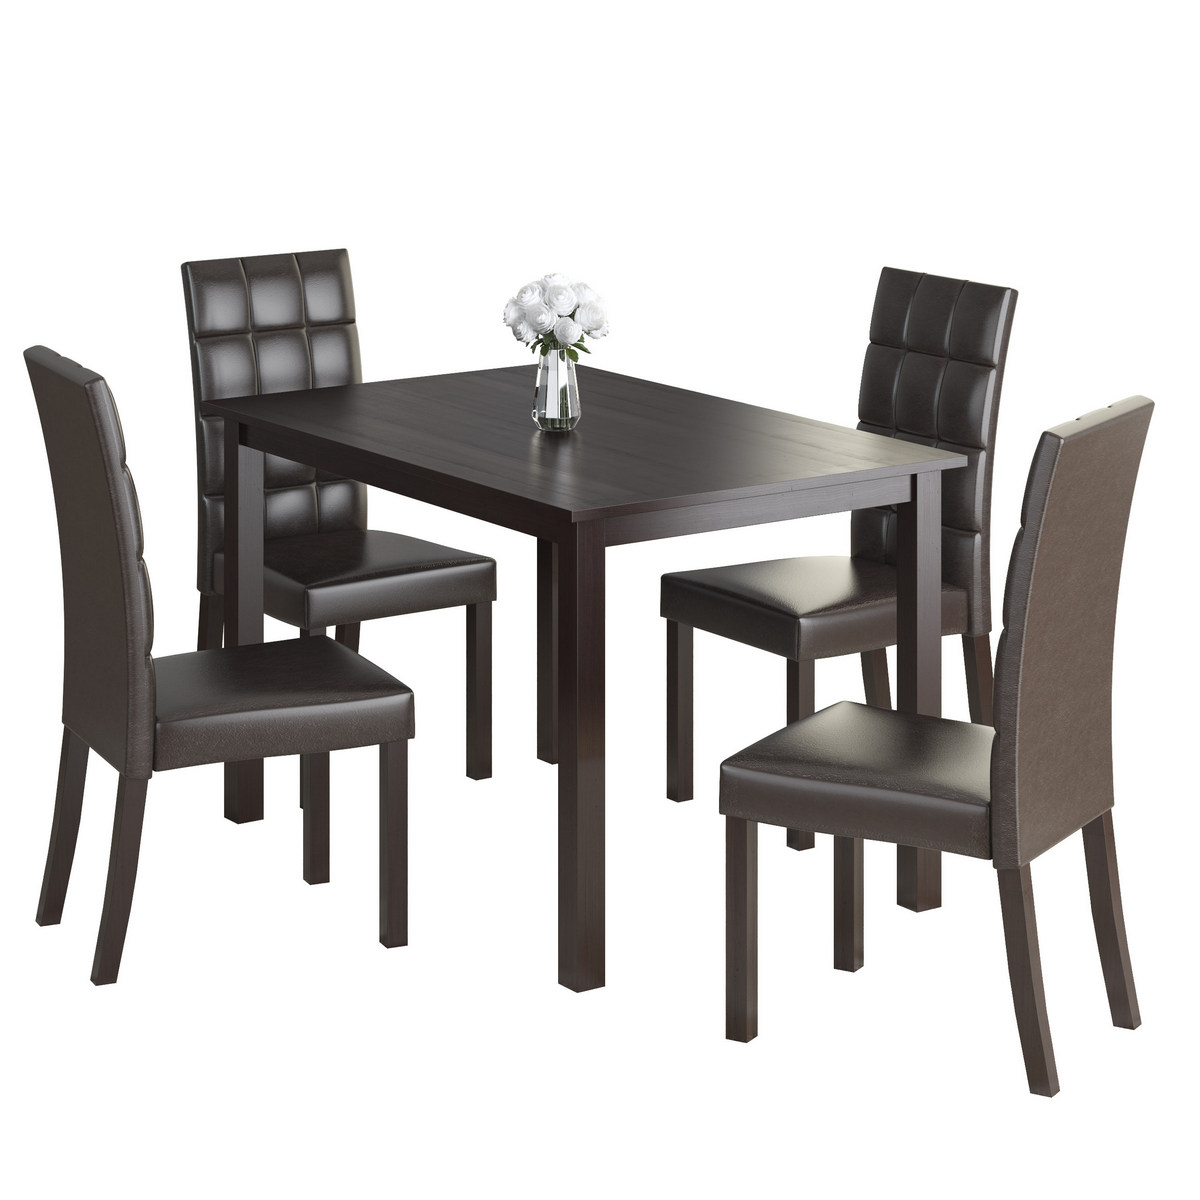 Corliving Dining Set Dark Brown Leatherette Seats